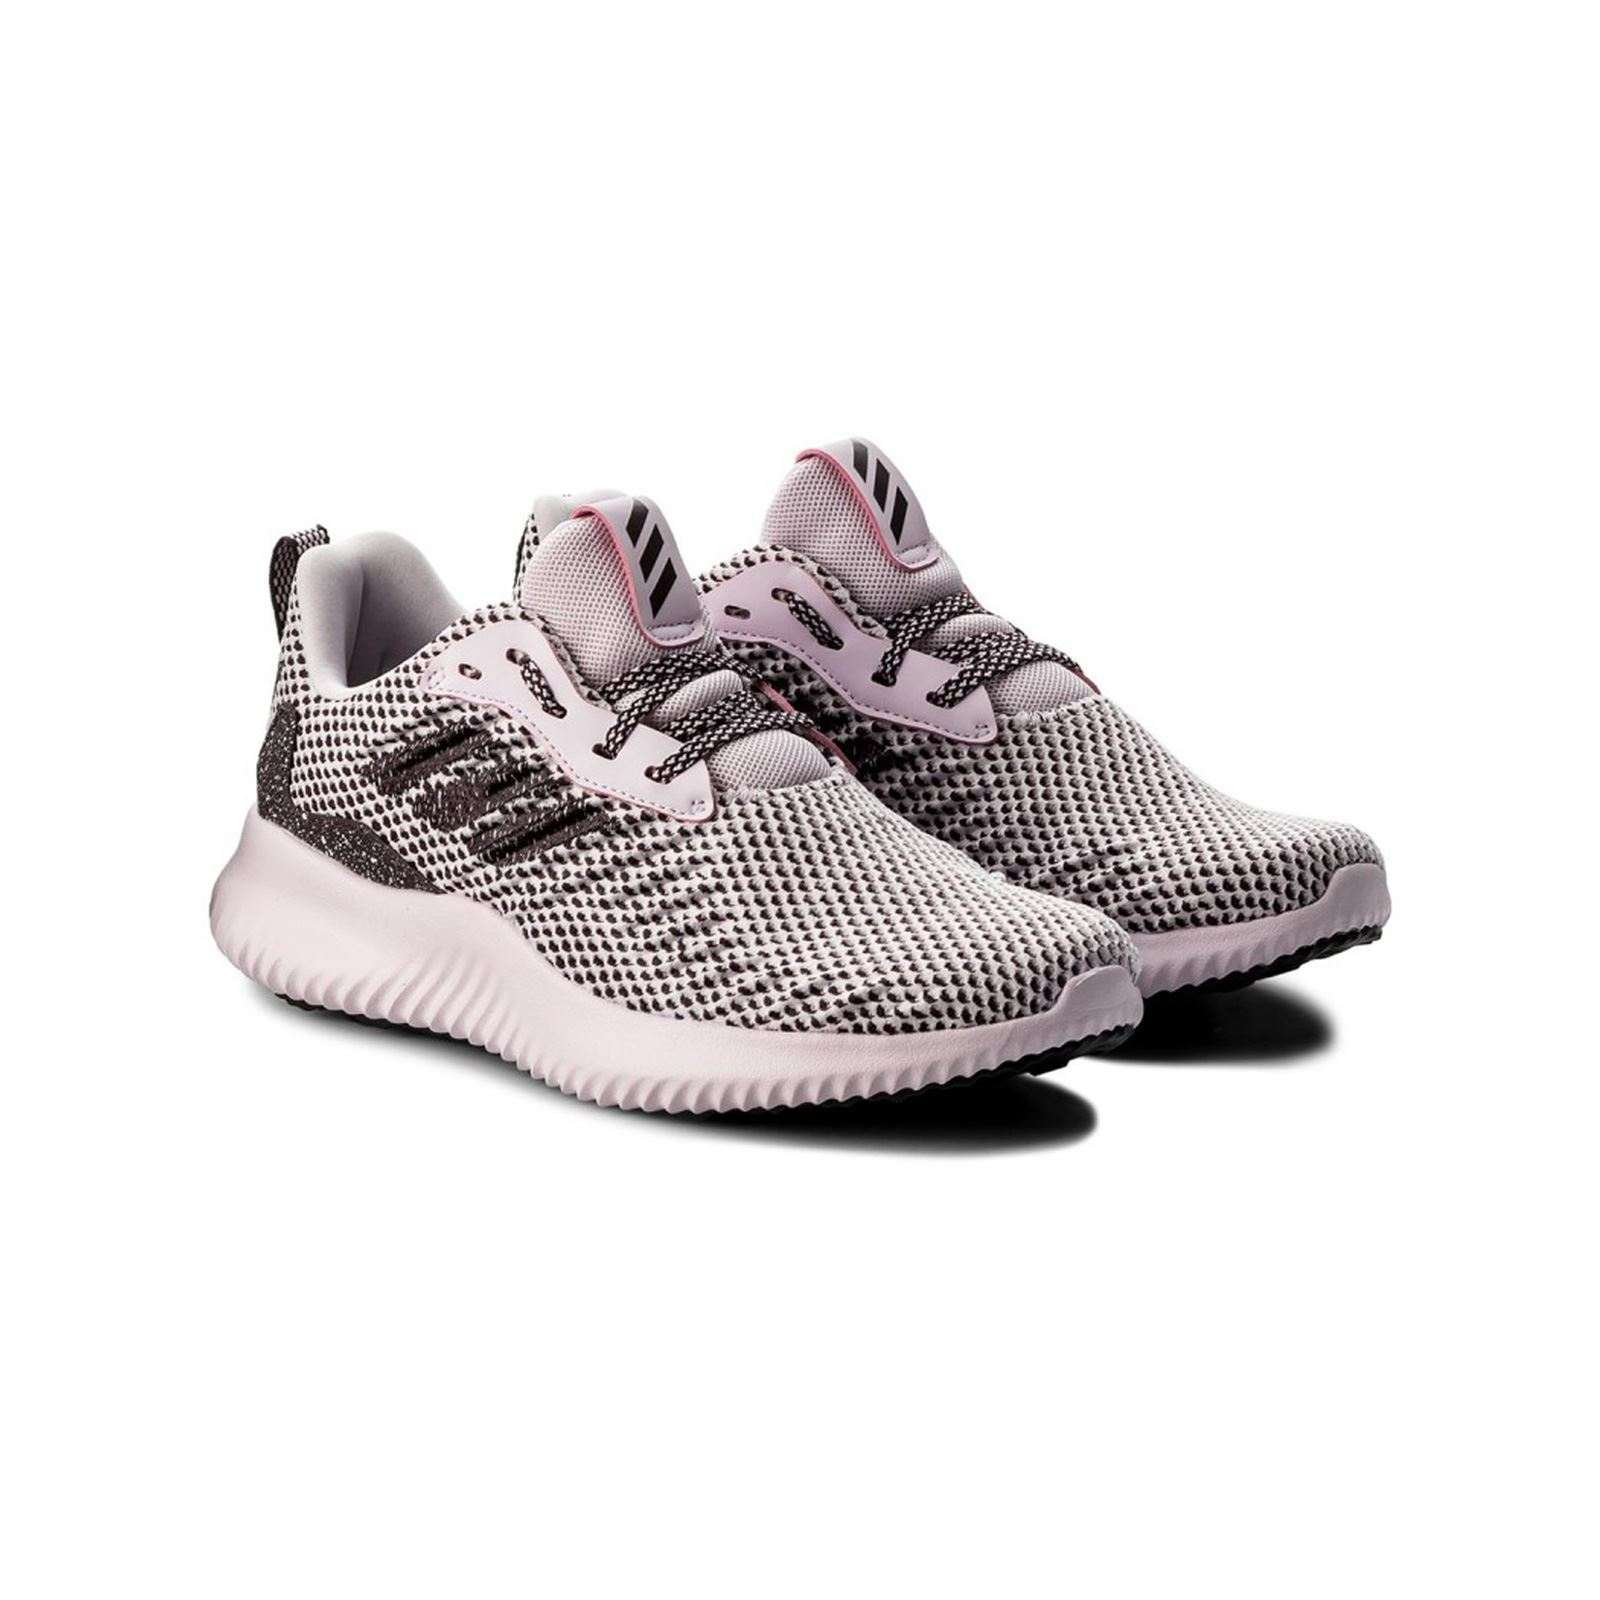 huge discount aaa62 074ce ADIDAS PERFORMANCE Alphabounce rc - Baskets Running - gris